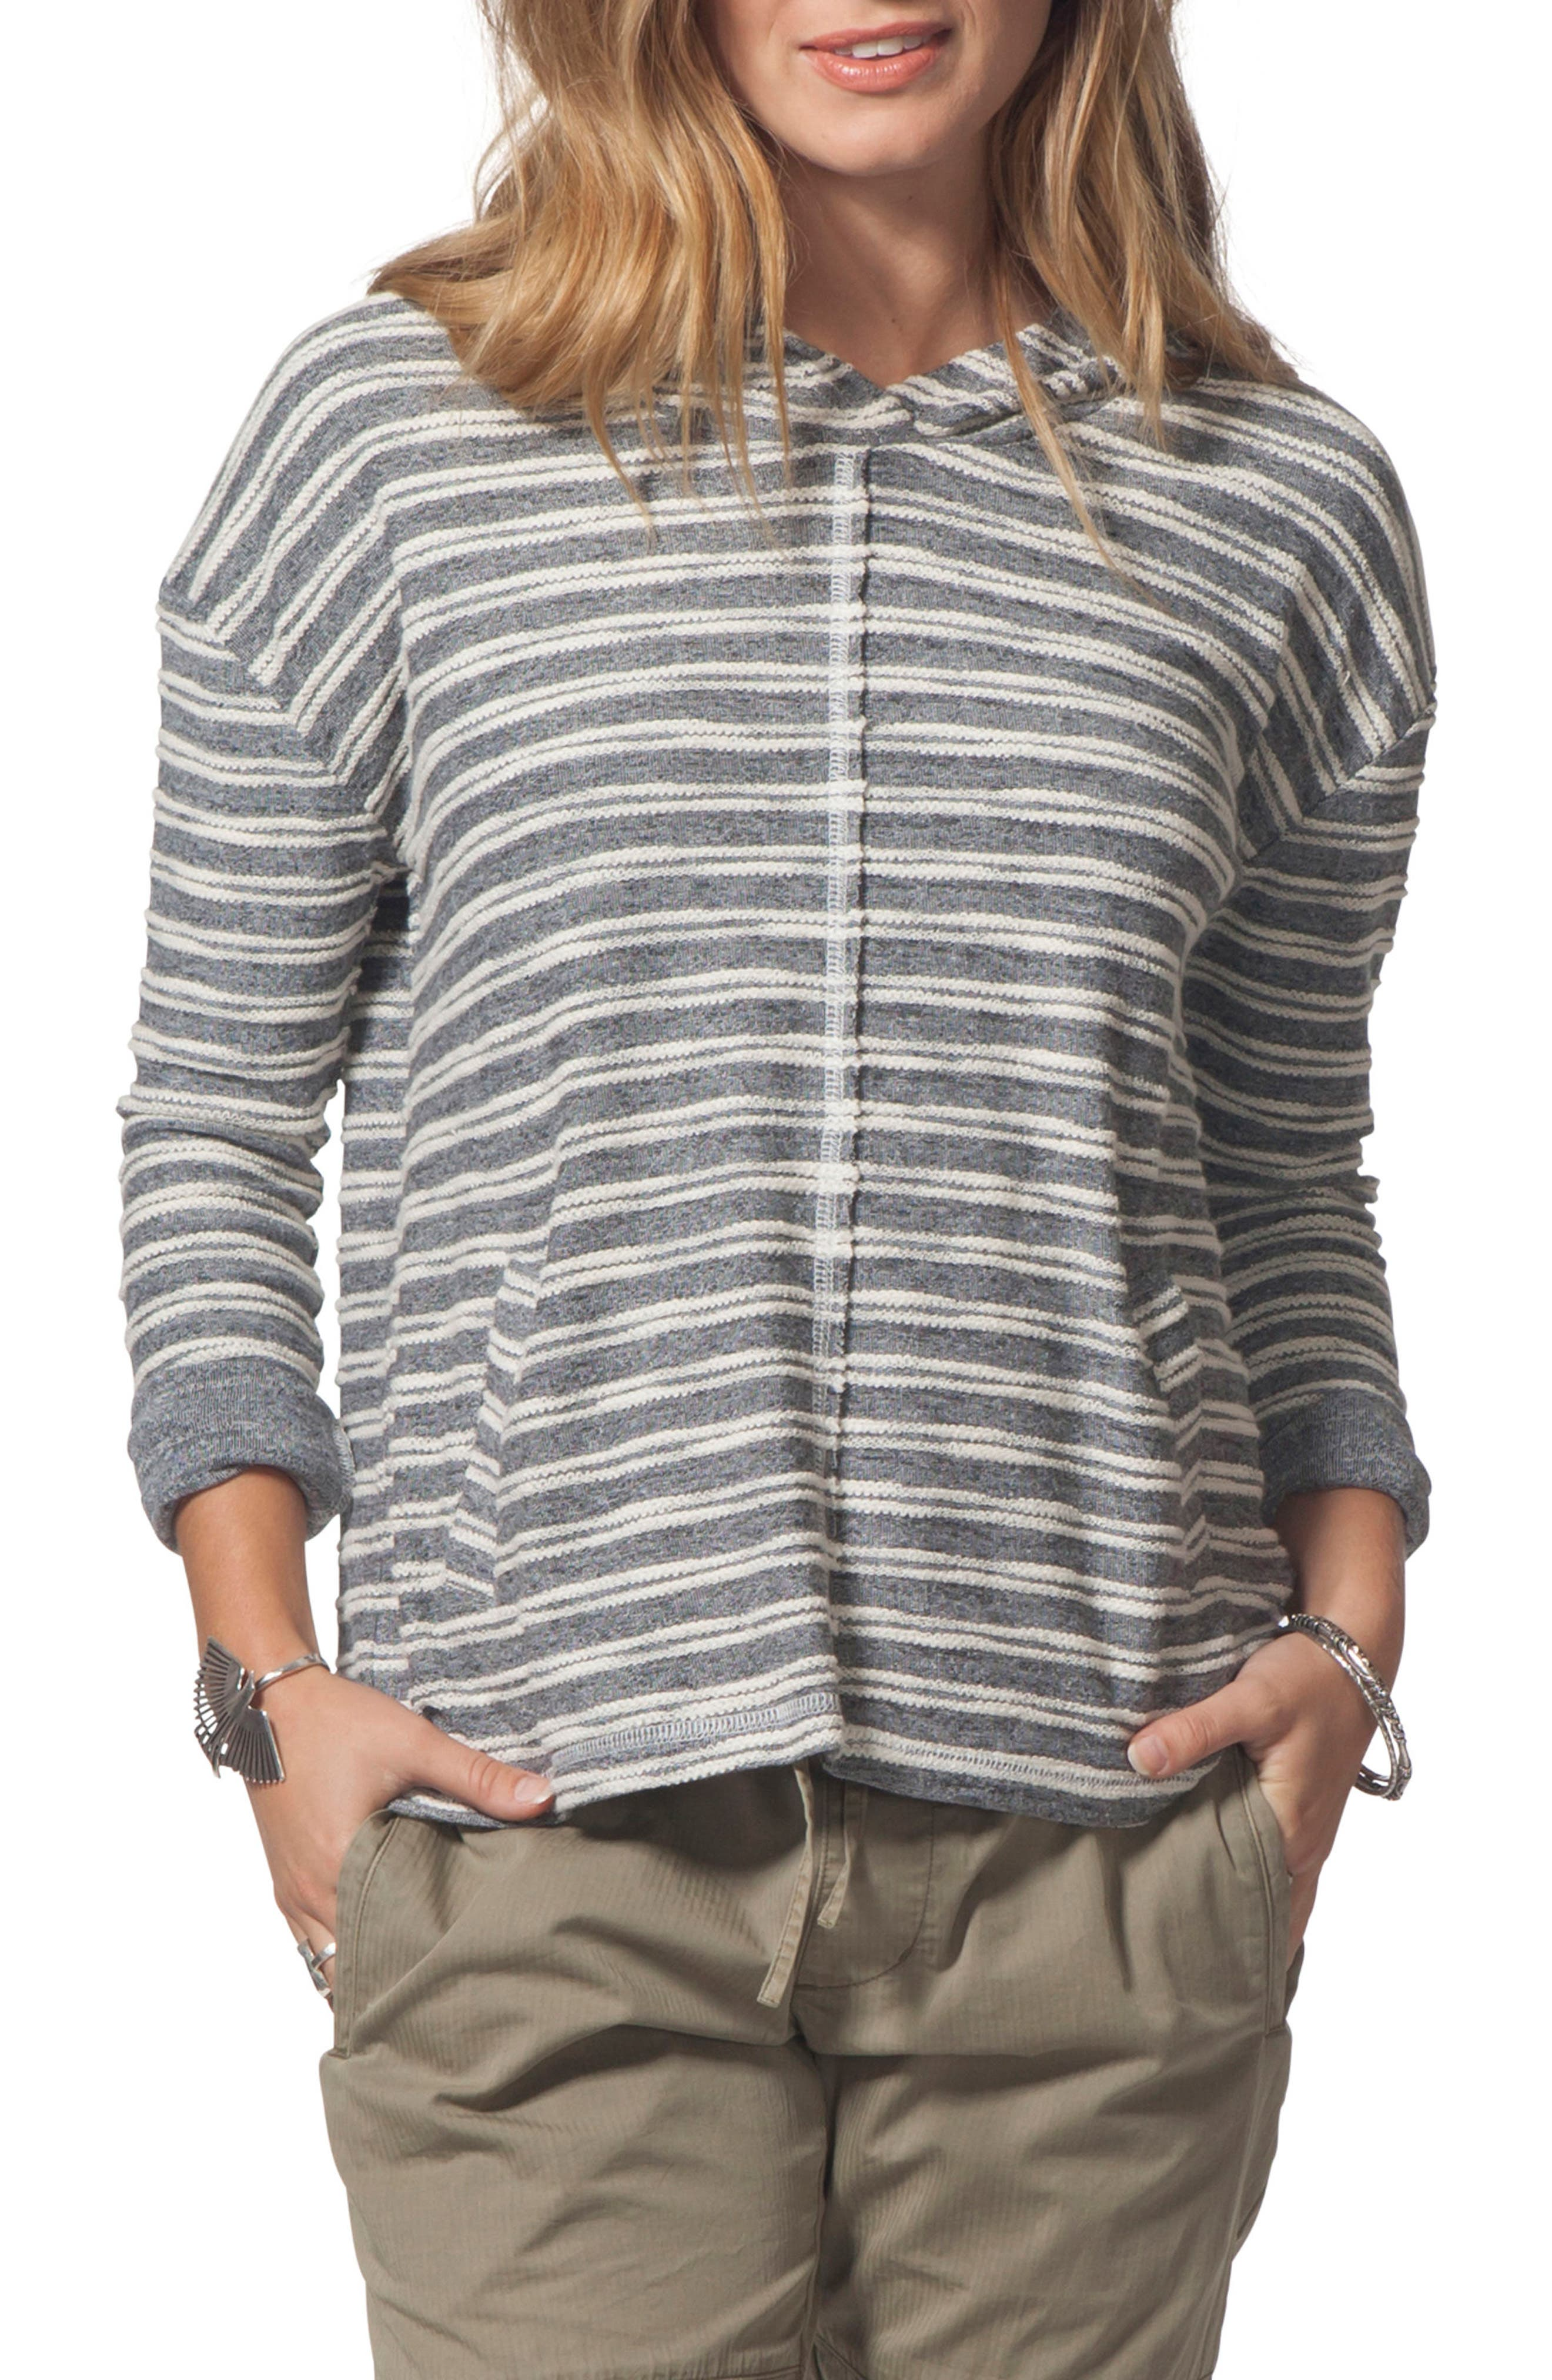 Next Move Stripe Hooded Pullover,                             Main thumbnail 1, color,                             001